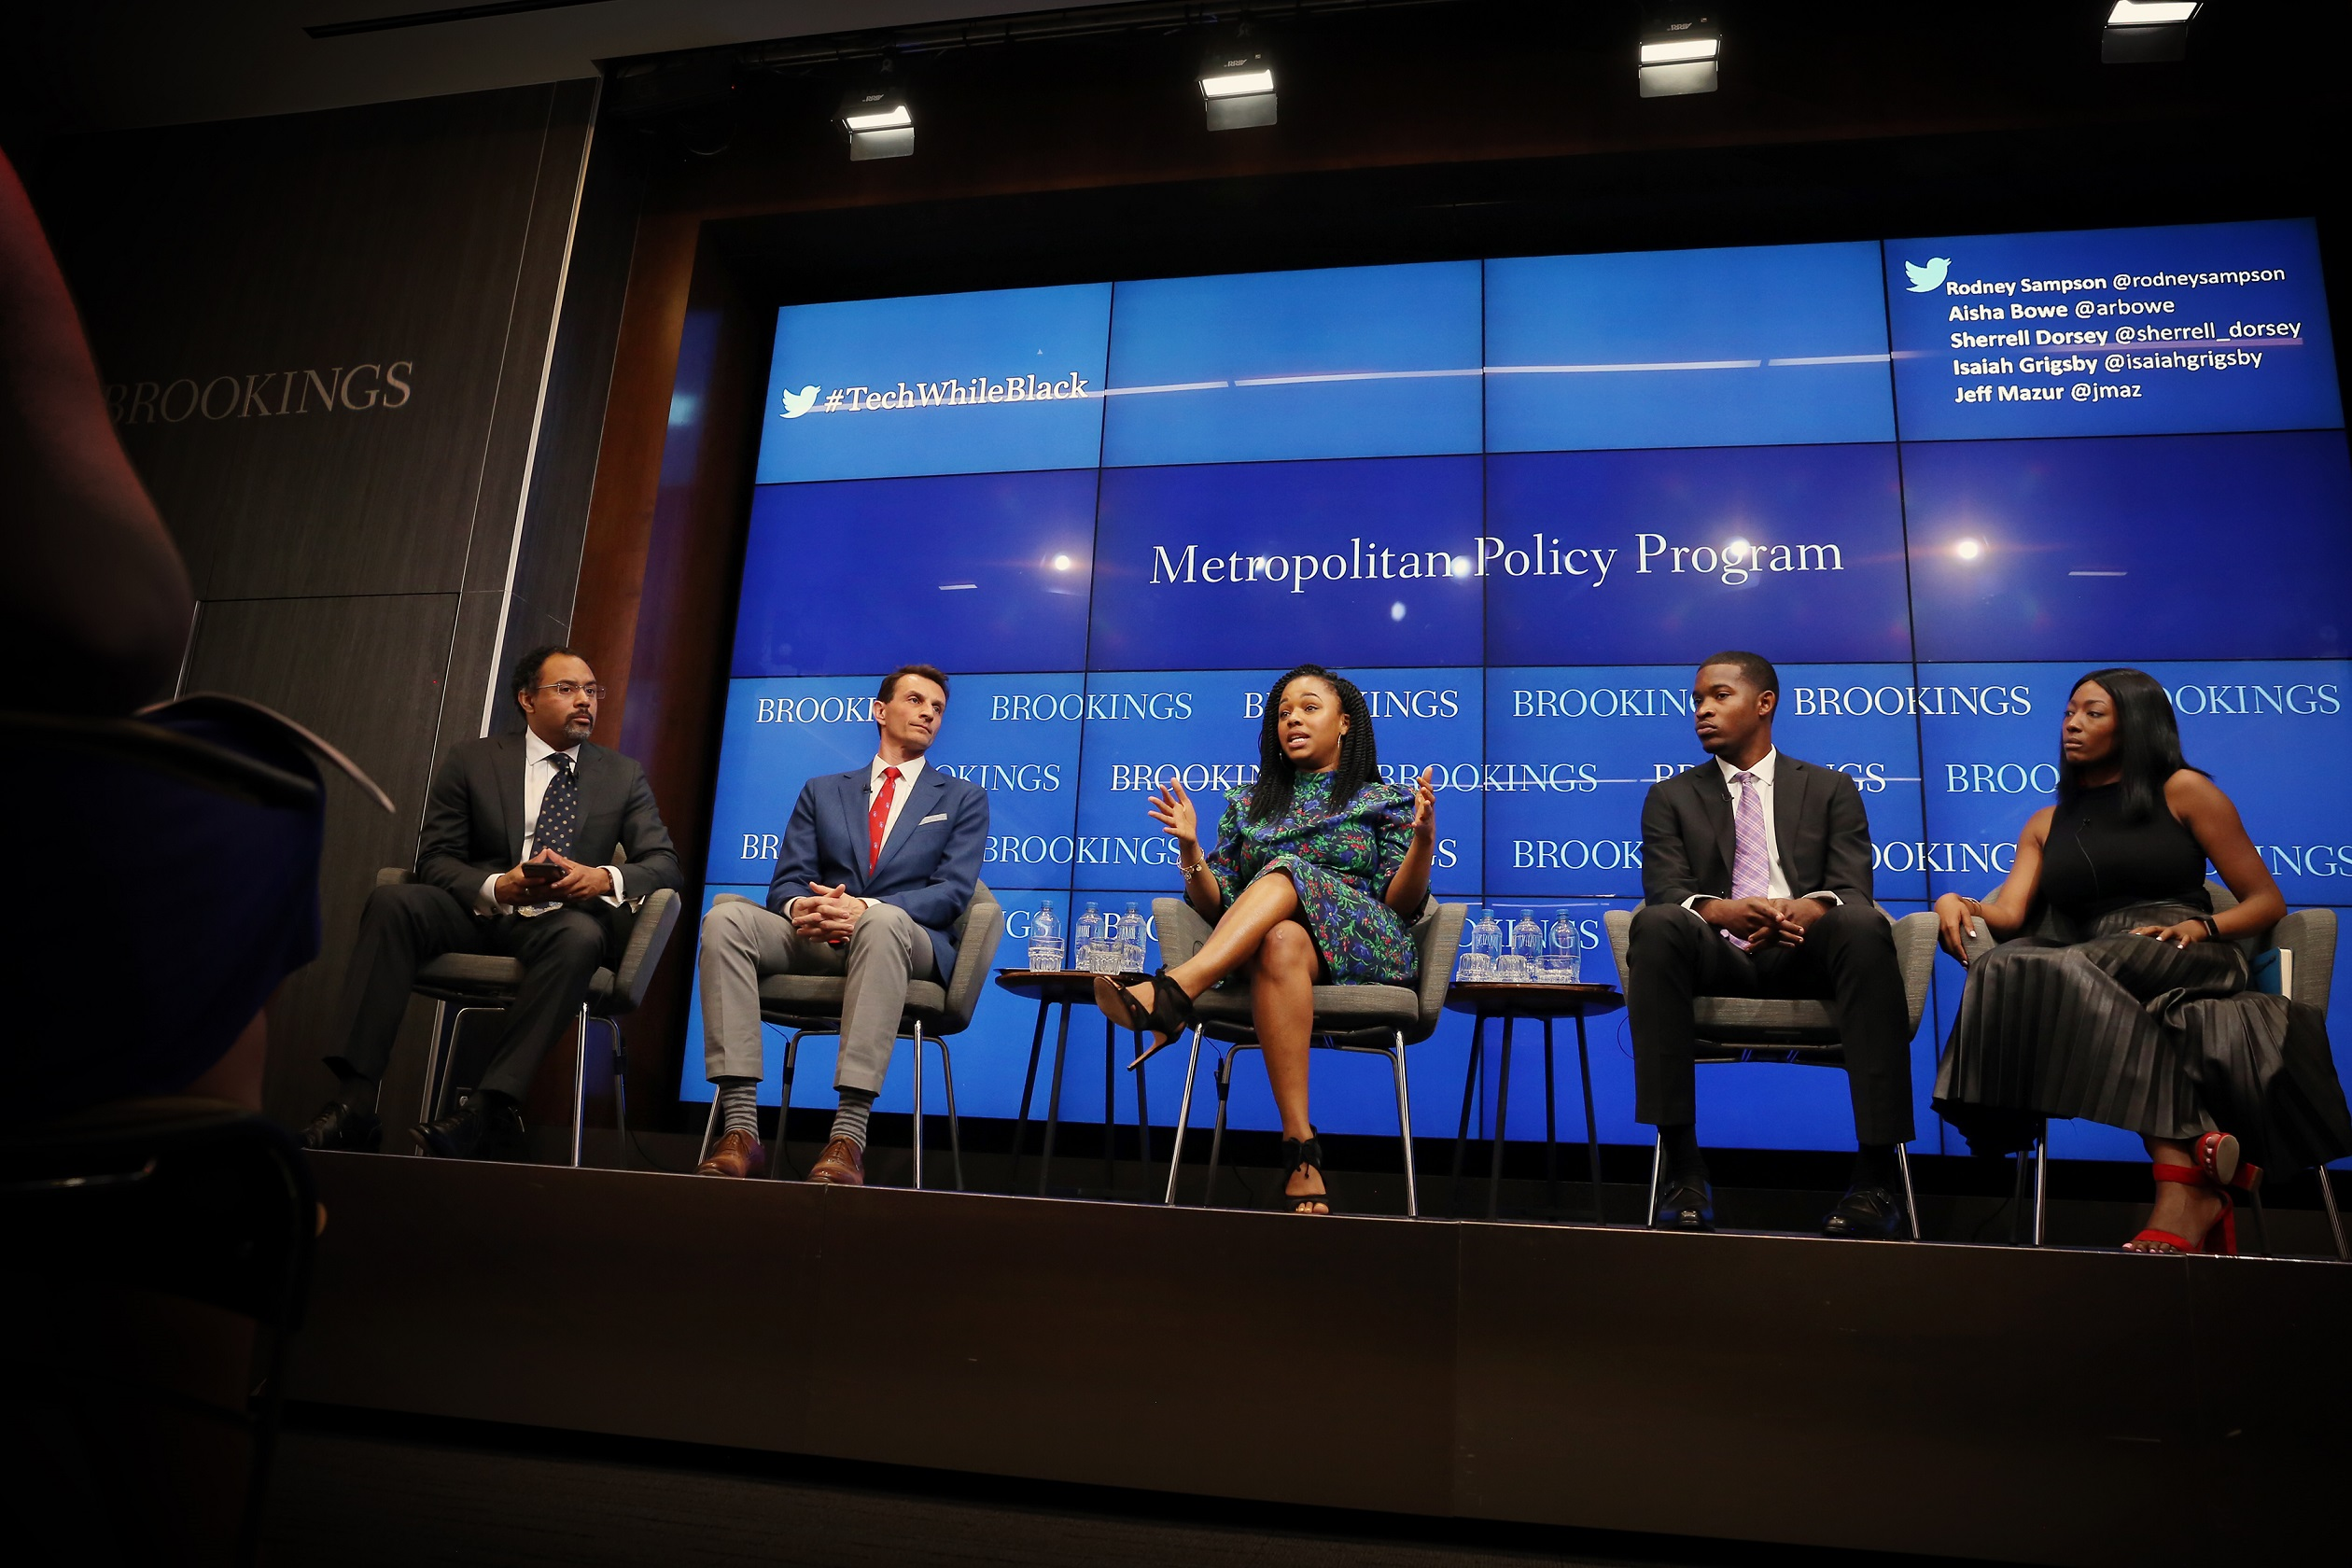 Brookings Metropolitan Policy Programs hosts 'Advancing opportunity for black collegians in tech and business' Friday, May 4, 2018 in Washington with moderator Andre M. Perry, the David M. Rubenstein Fellow; Rodney Sampson, Chairman and Chief Executive Officer of Opportunity Hub; Mark Muro, Senior Fellow and Policy Director; Aisha Bowe, Co-Founder and Chief Executive Officer of STEMBoard; Sherrell Dorsey, founder of ThePLUGDaily.com; Isaiah Grigsby, Senior at Clark Atlanta University OHUB@ Campus Chapter Developer; Jeff Mazur, Executive Director of LaunchCode; Tiffany Bussey, Founding Director of Morehouse College Enterpreneurship Center Lead - Ascend2020 Atlanta; Chanelle Hardy, Strategic Outreach and Public Policy Partnerships at Google; Ronald Mason, University of the District of Columbia President; Chad Womack, National Director for STEM Initiatives at UNCF; and Nicol Turner-Lee. Fellow at Governance Studies, Center for Technology Innovation. (Sharon Farmer/sfphotoworks)